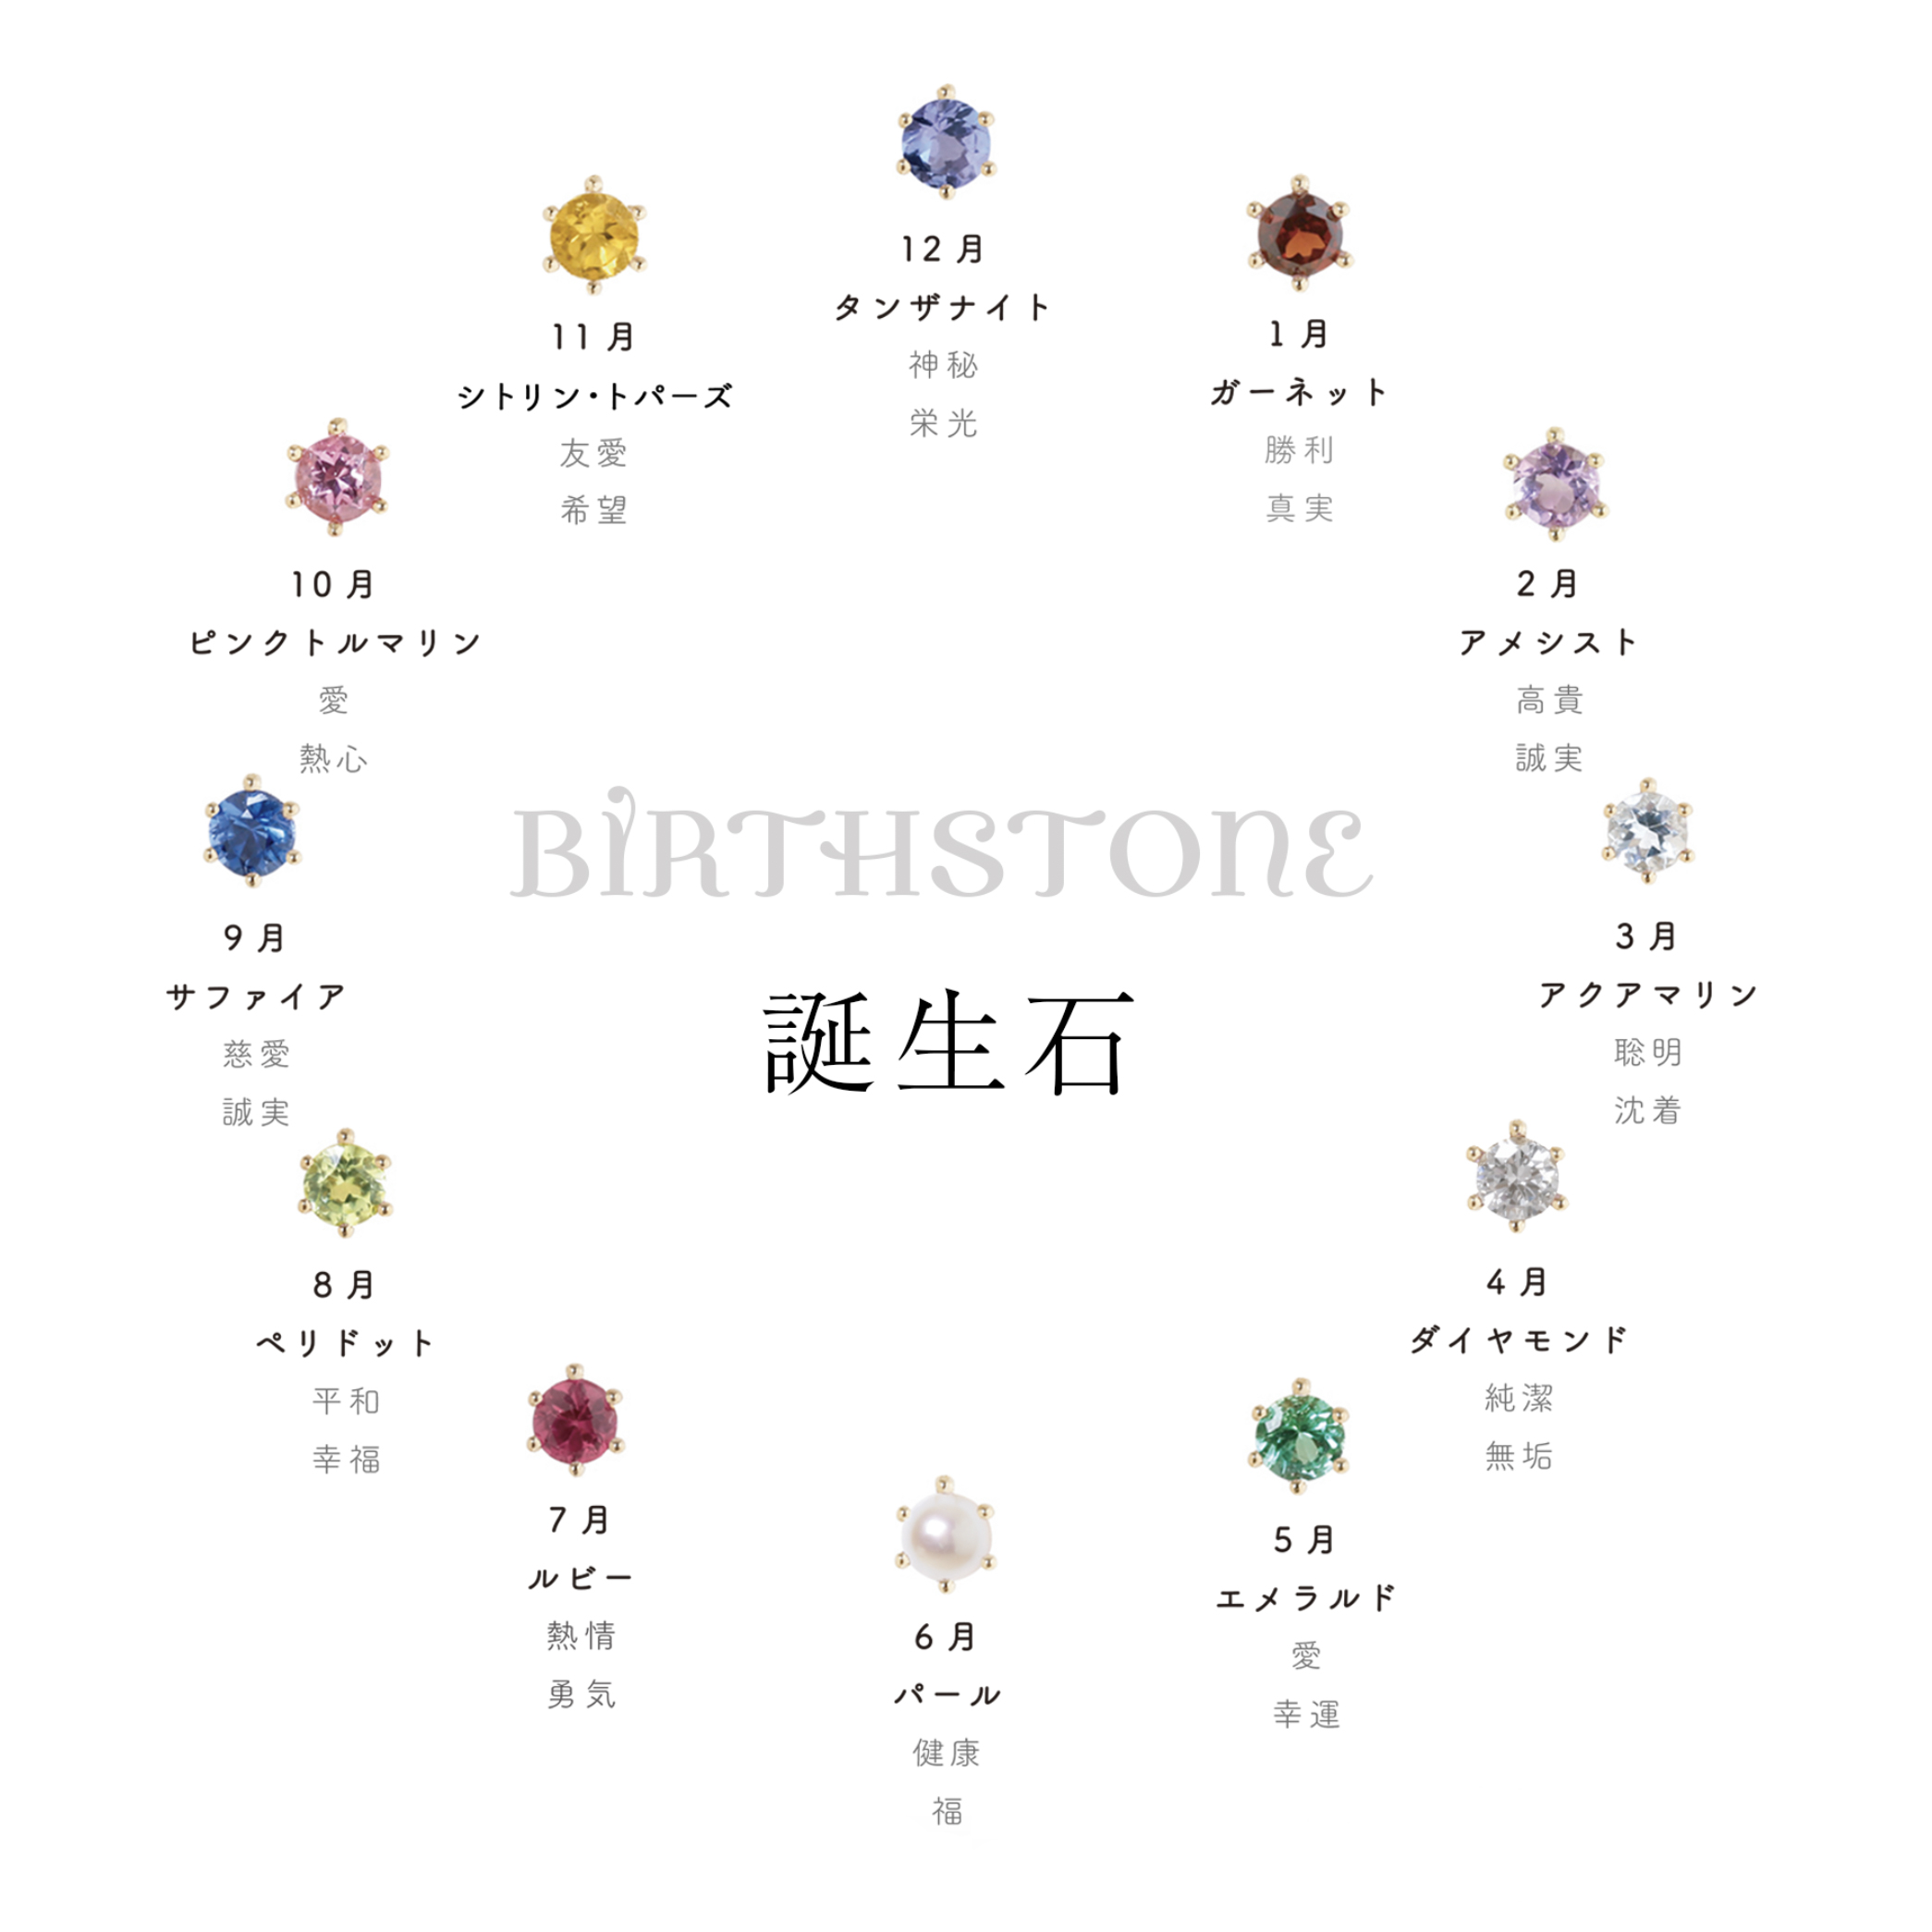 birthstone_topimg